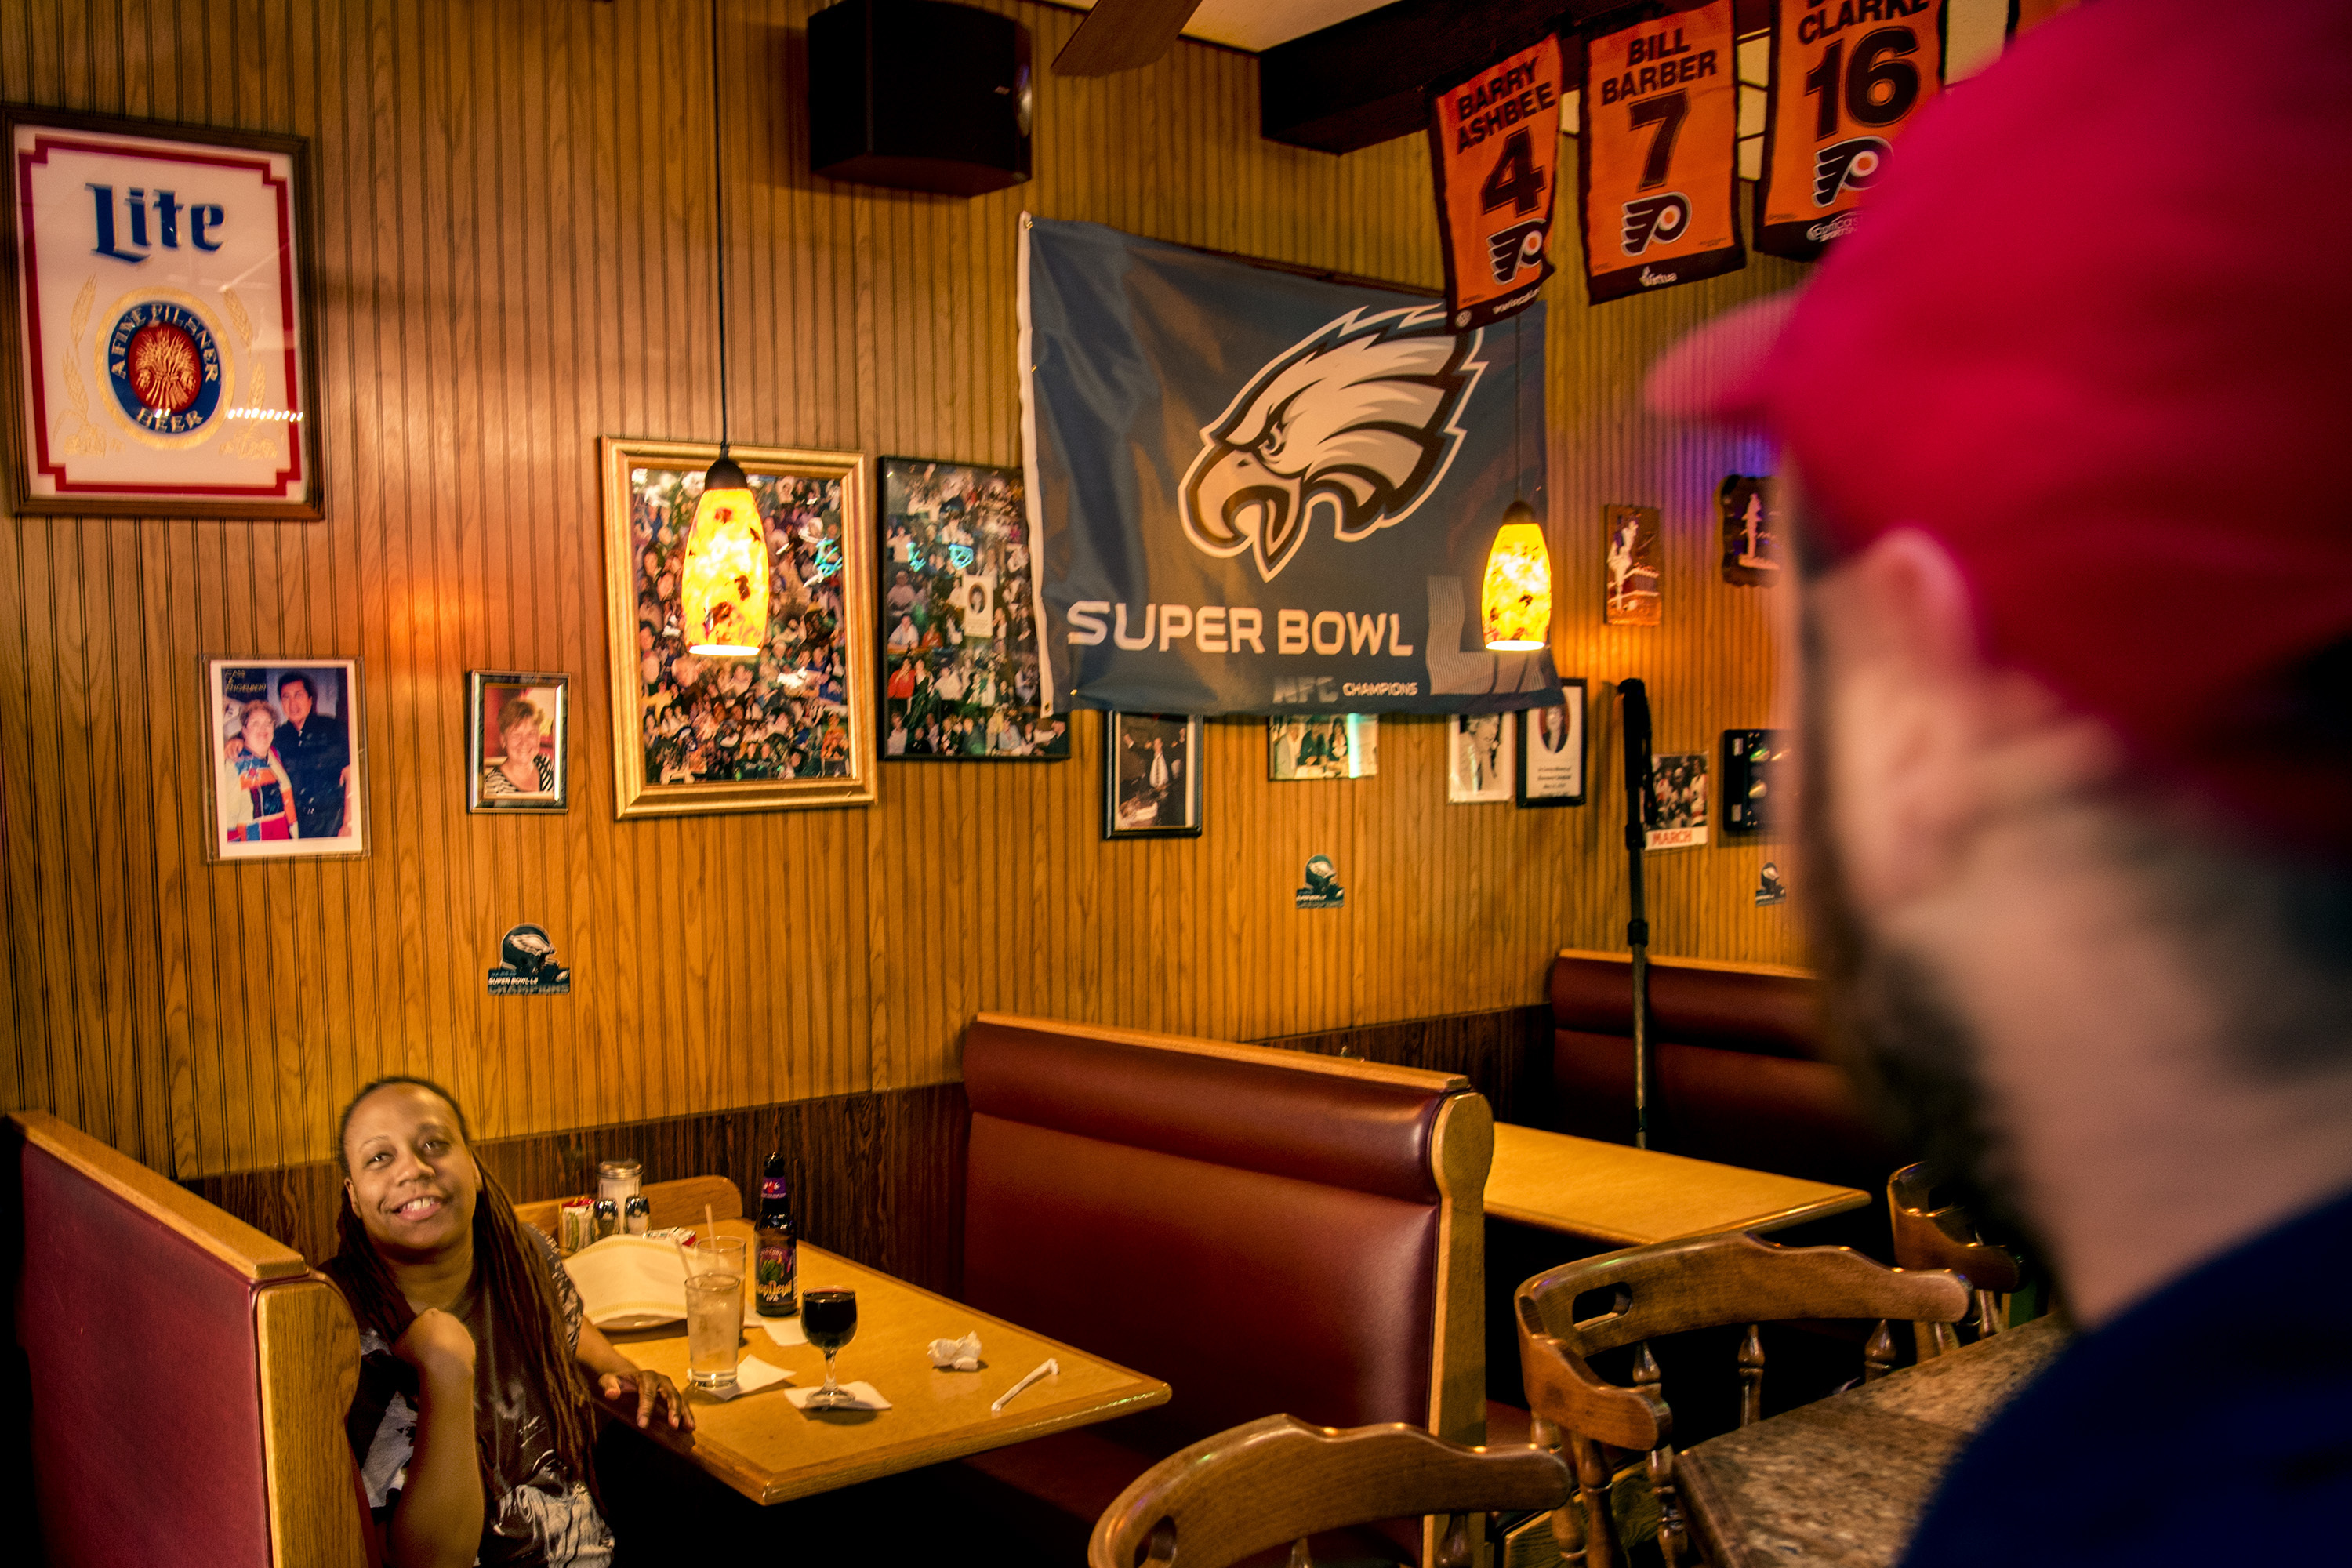 Regulars Maria Boyd (left) and Travis Hopkins (right) talk in the bar at the Midtown III.